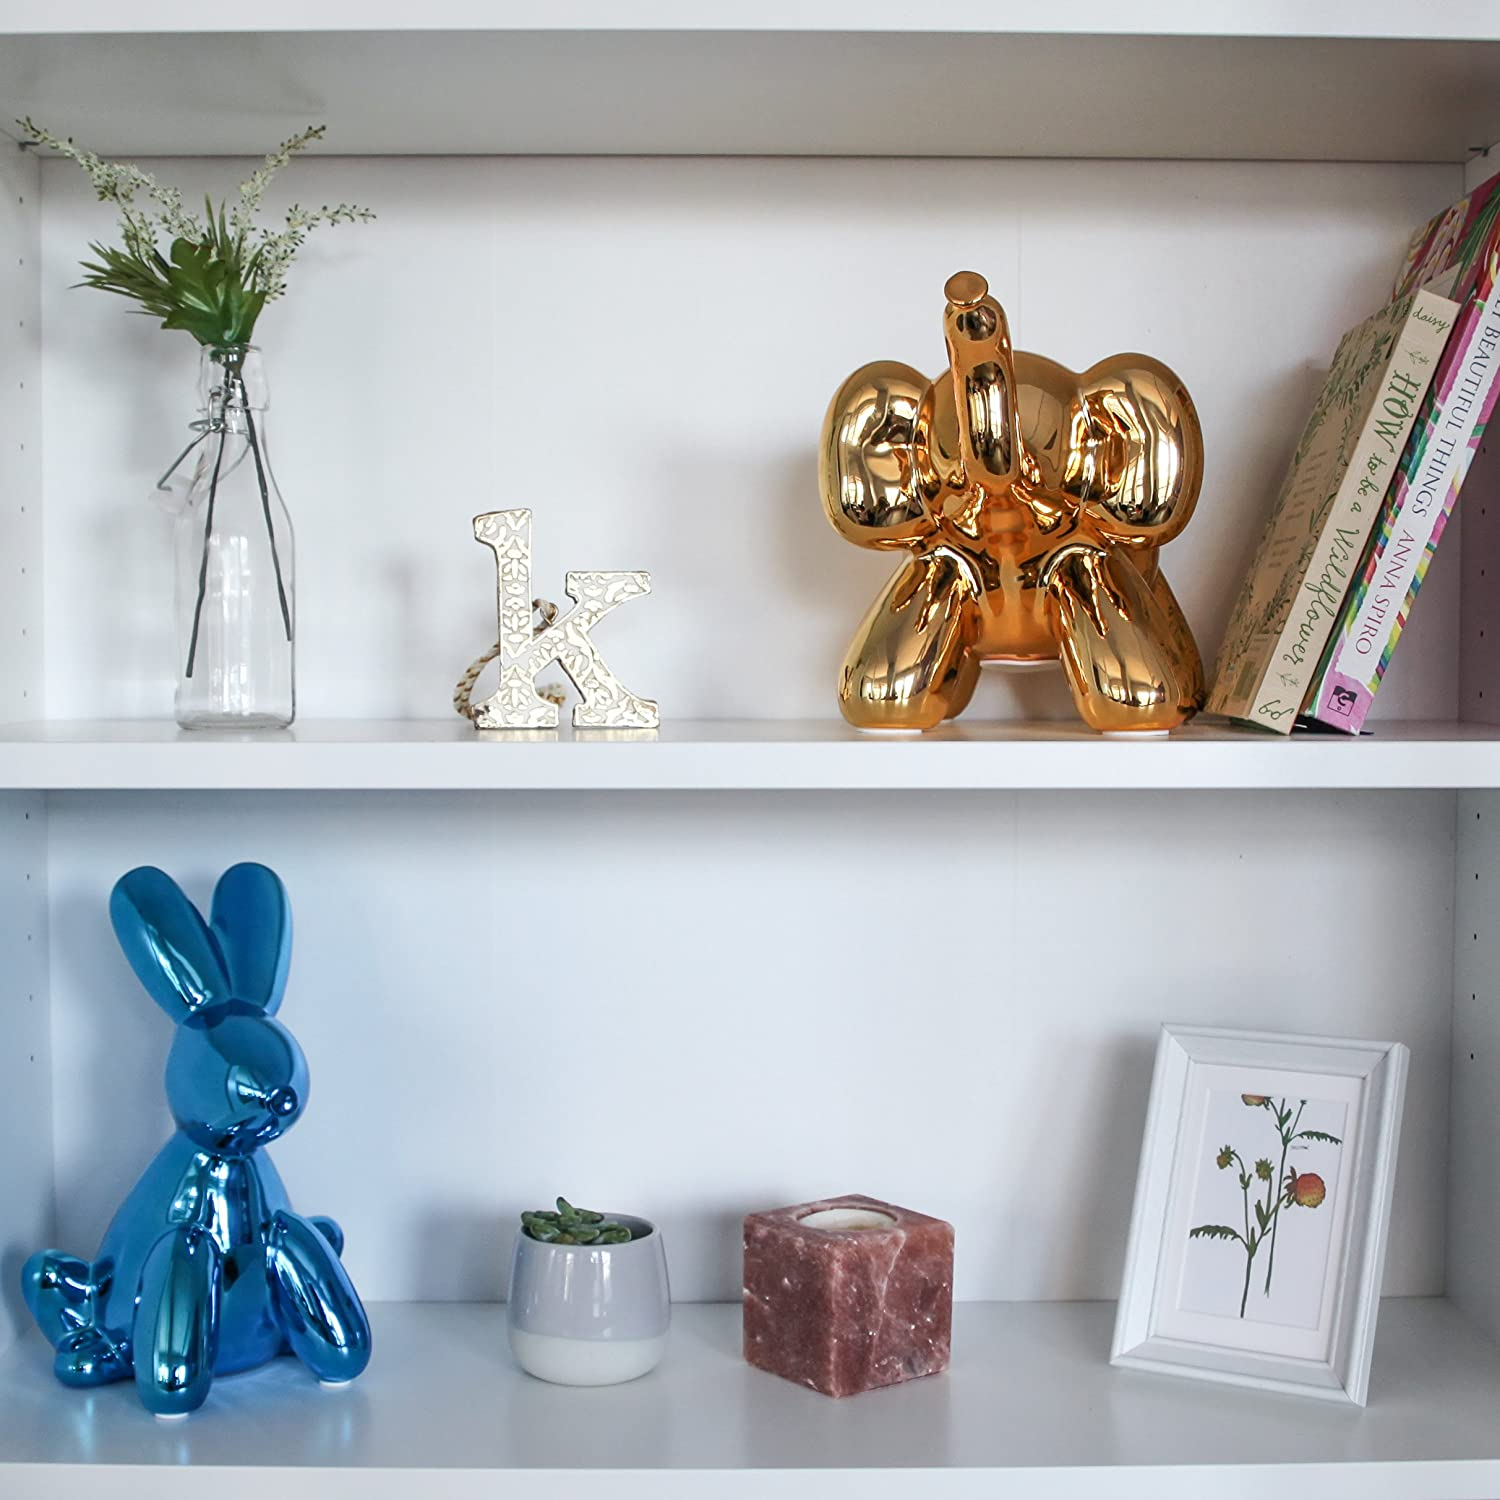 Blue Cool and Unique Ceramic Piggy Bank with High-Gloss Finish Made By Humans Balloon Bank Bunny